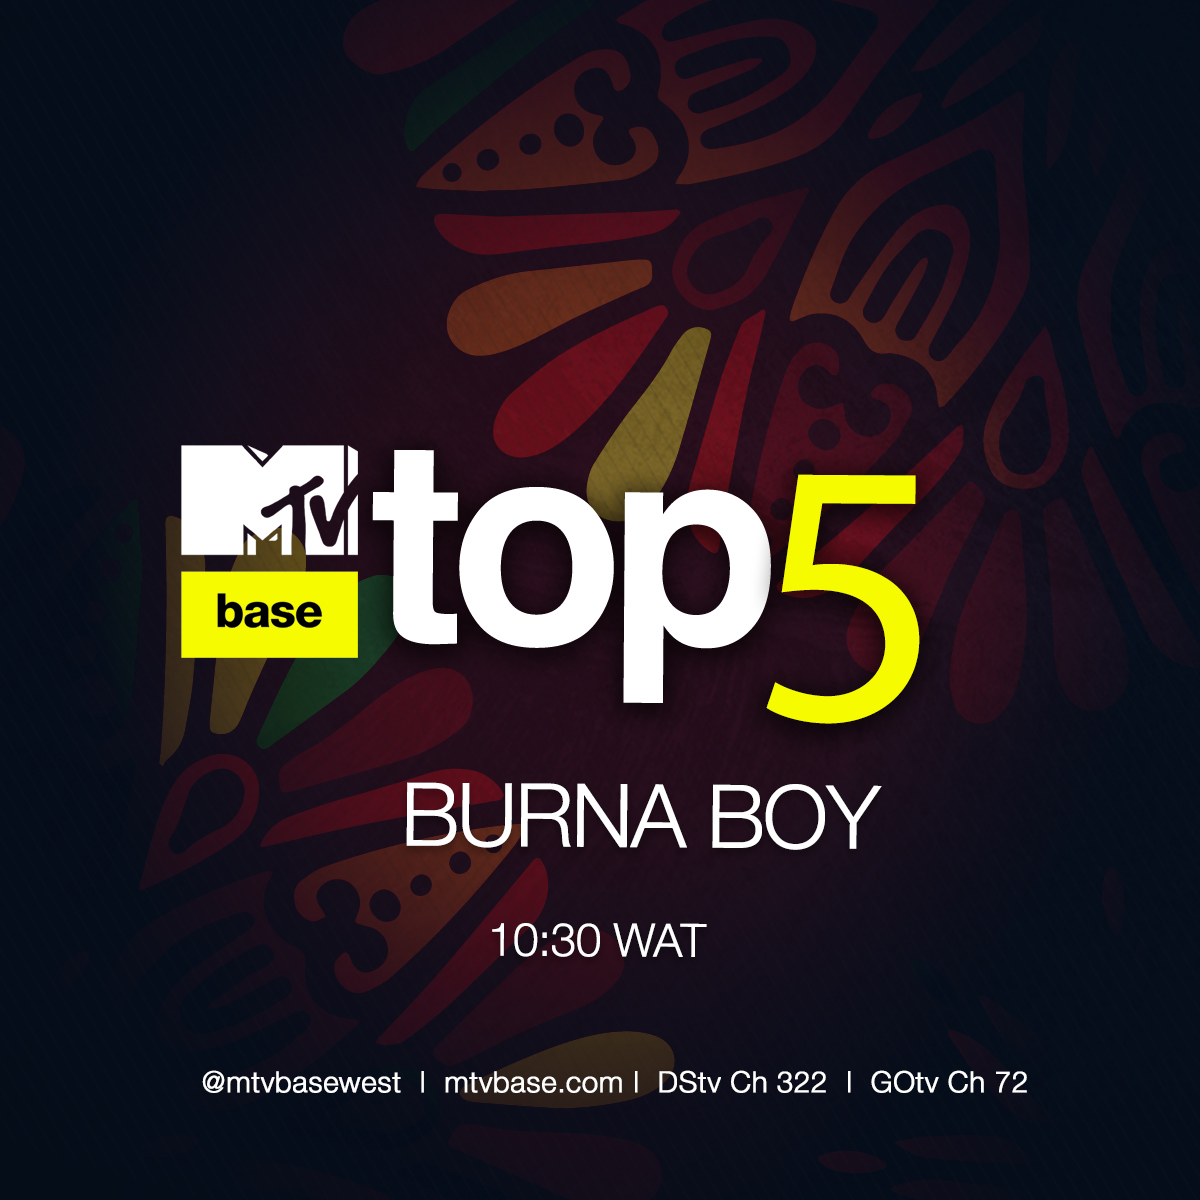 Here comes the AFRICAN GIANT 🦍🦍 We got a playlist on your fav @burnaboy today at 10:30 am WAT Where the real fans at? Come check us out on @DStvNg ch 322 and @GOtvNg Ch 72 🙌